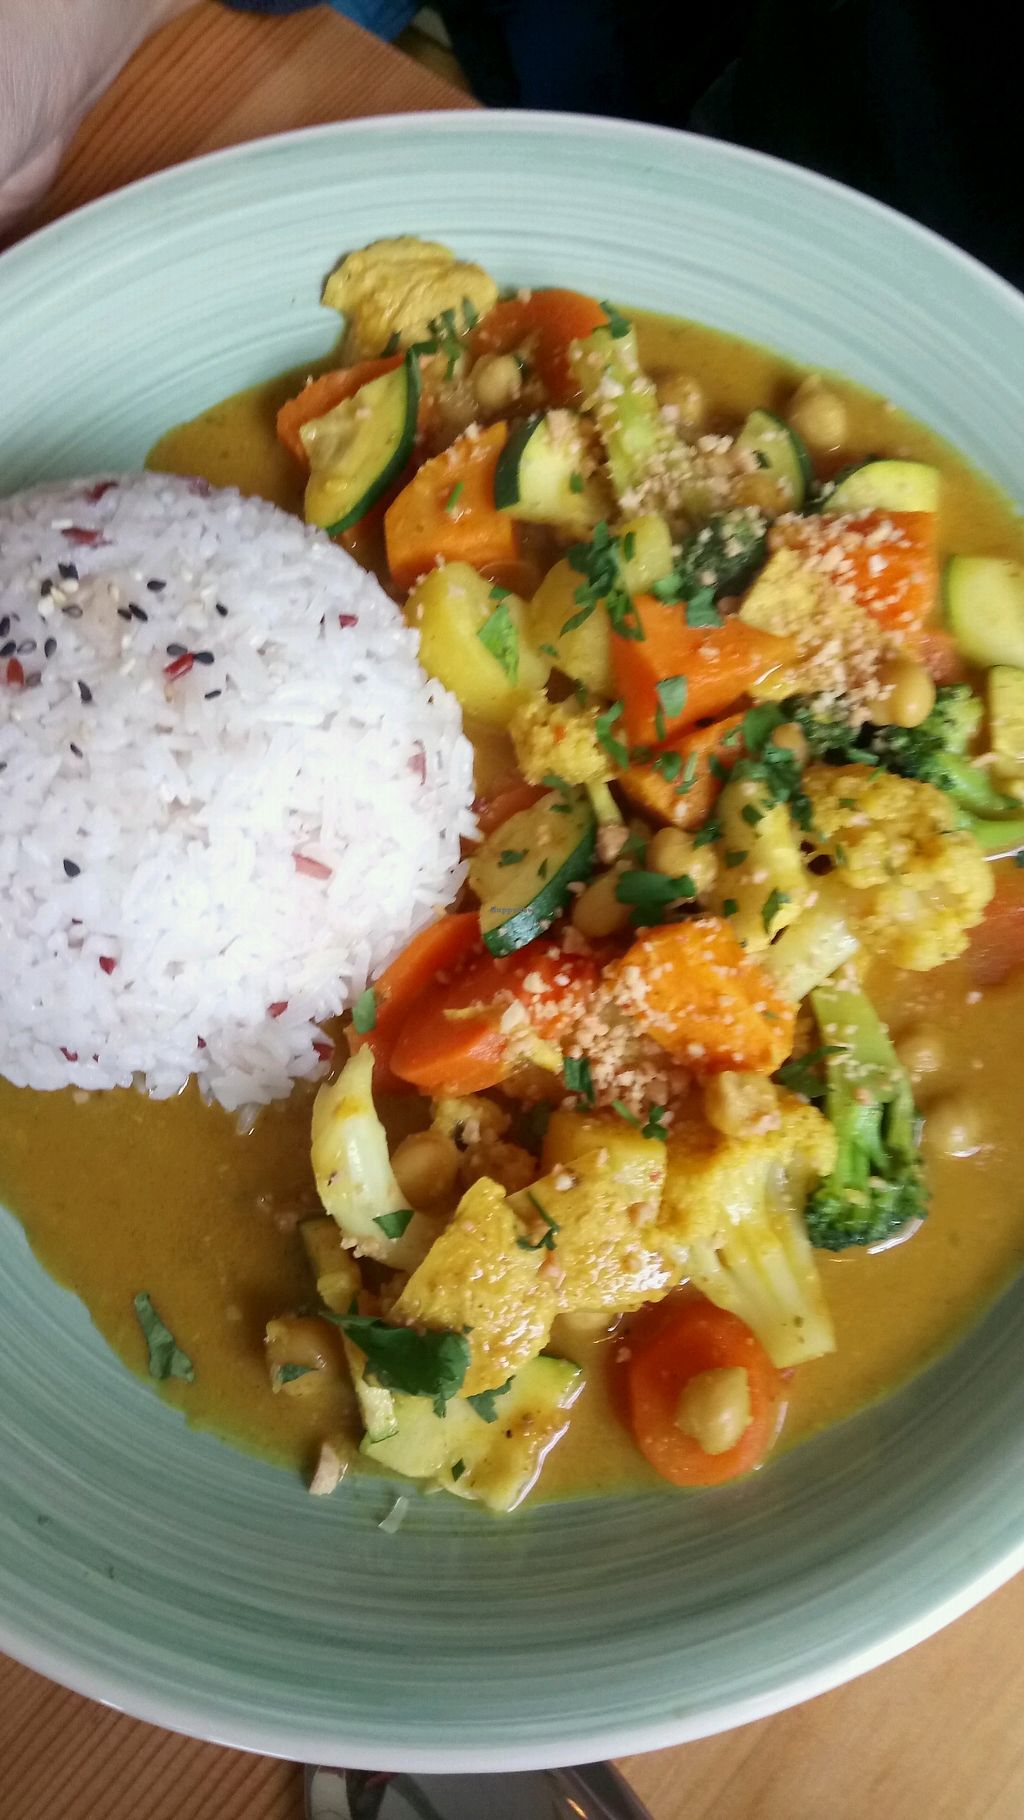 """Photo of Loving Hut  by <a href=""""/members/profile/Shama2004"""">Shama2004</a> <br/>coconut Thai curry <br/> March 25, 2018  - <a href='/contact/abuse/image/58464/375996'>Report</a>"""